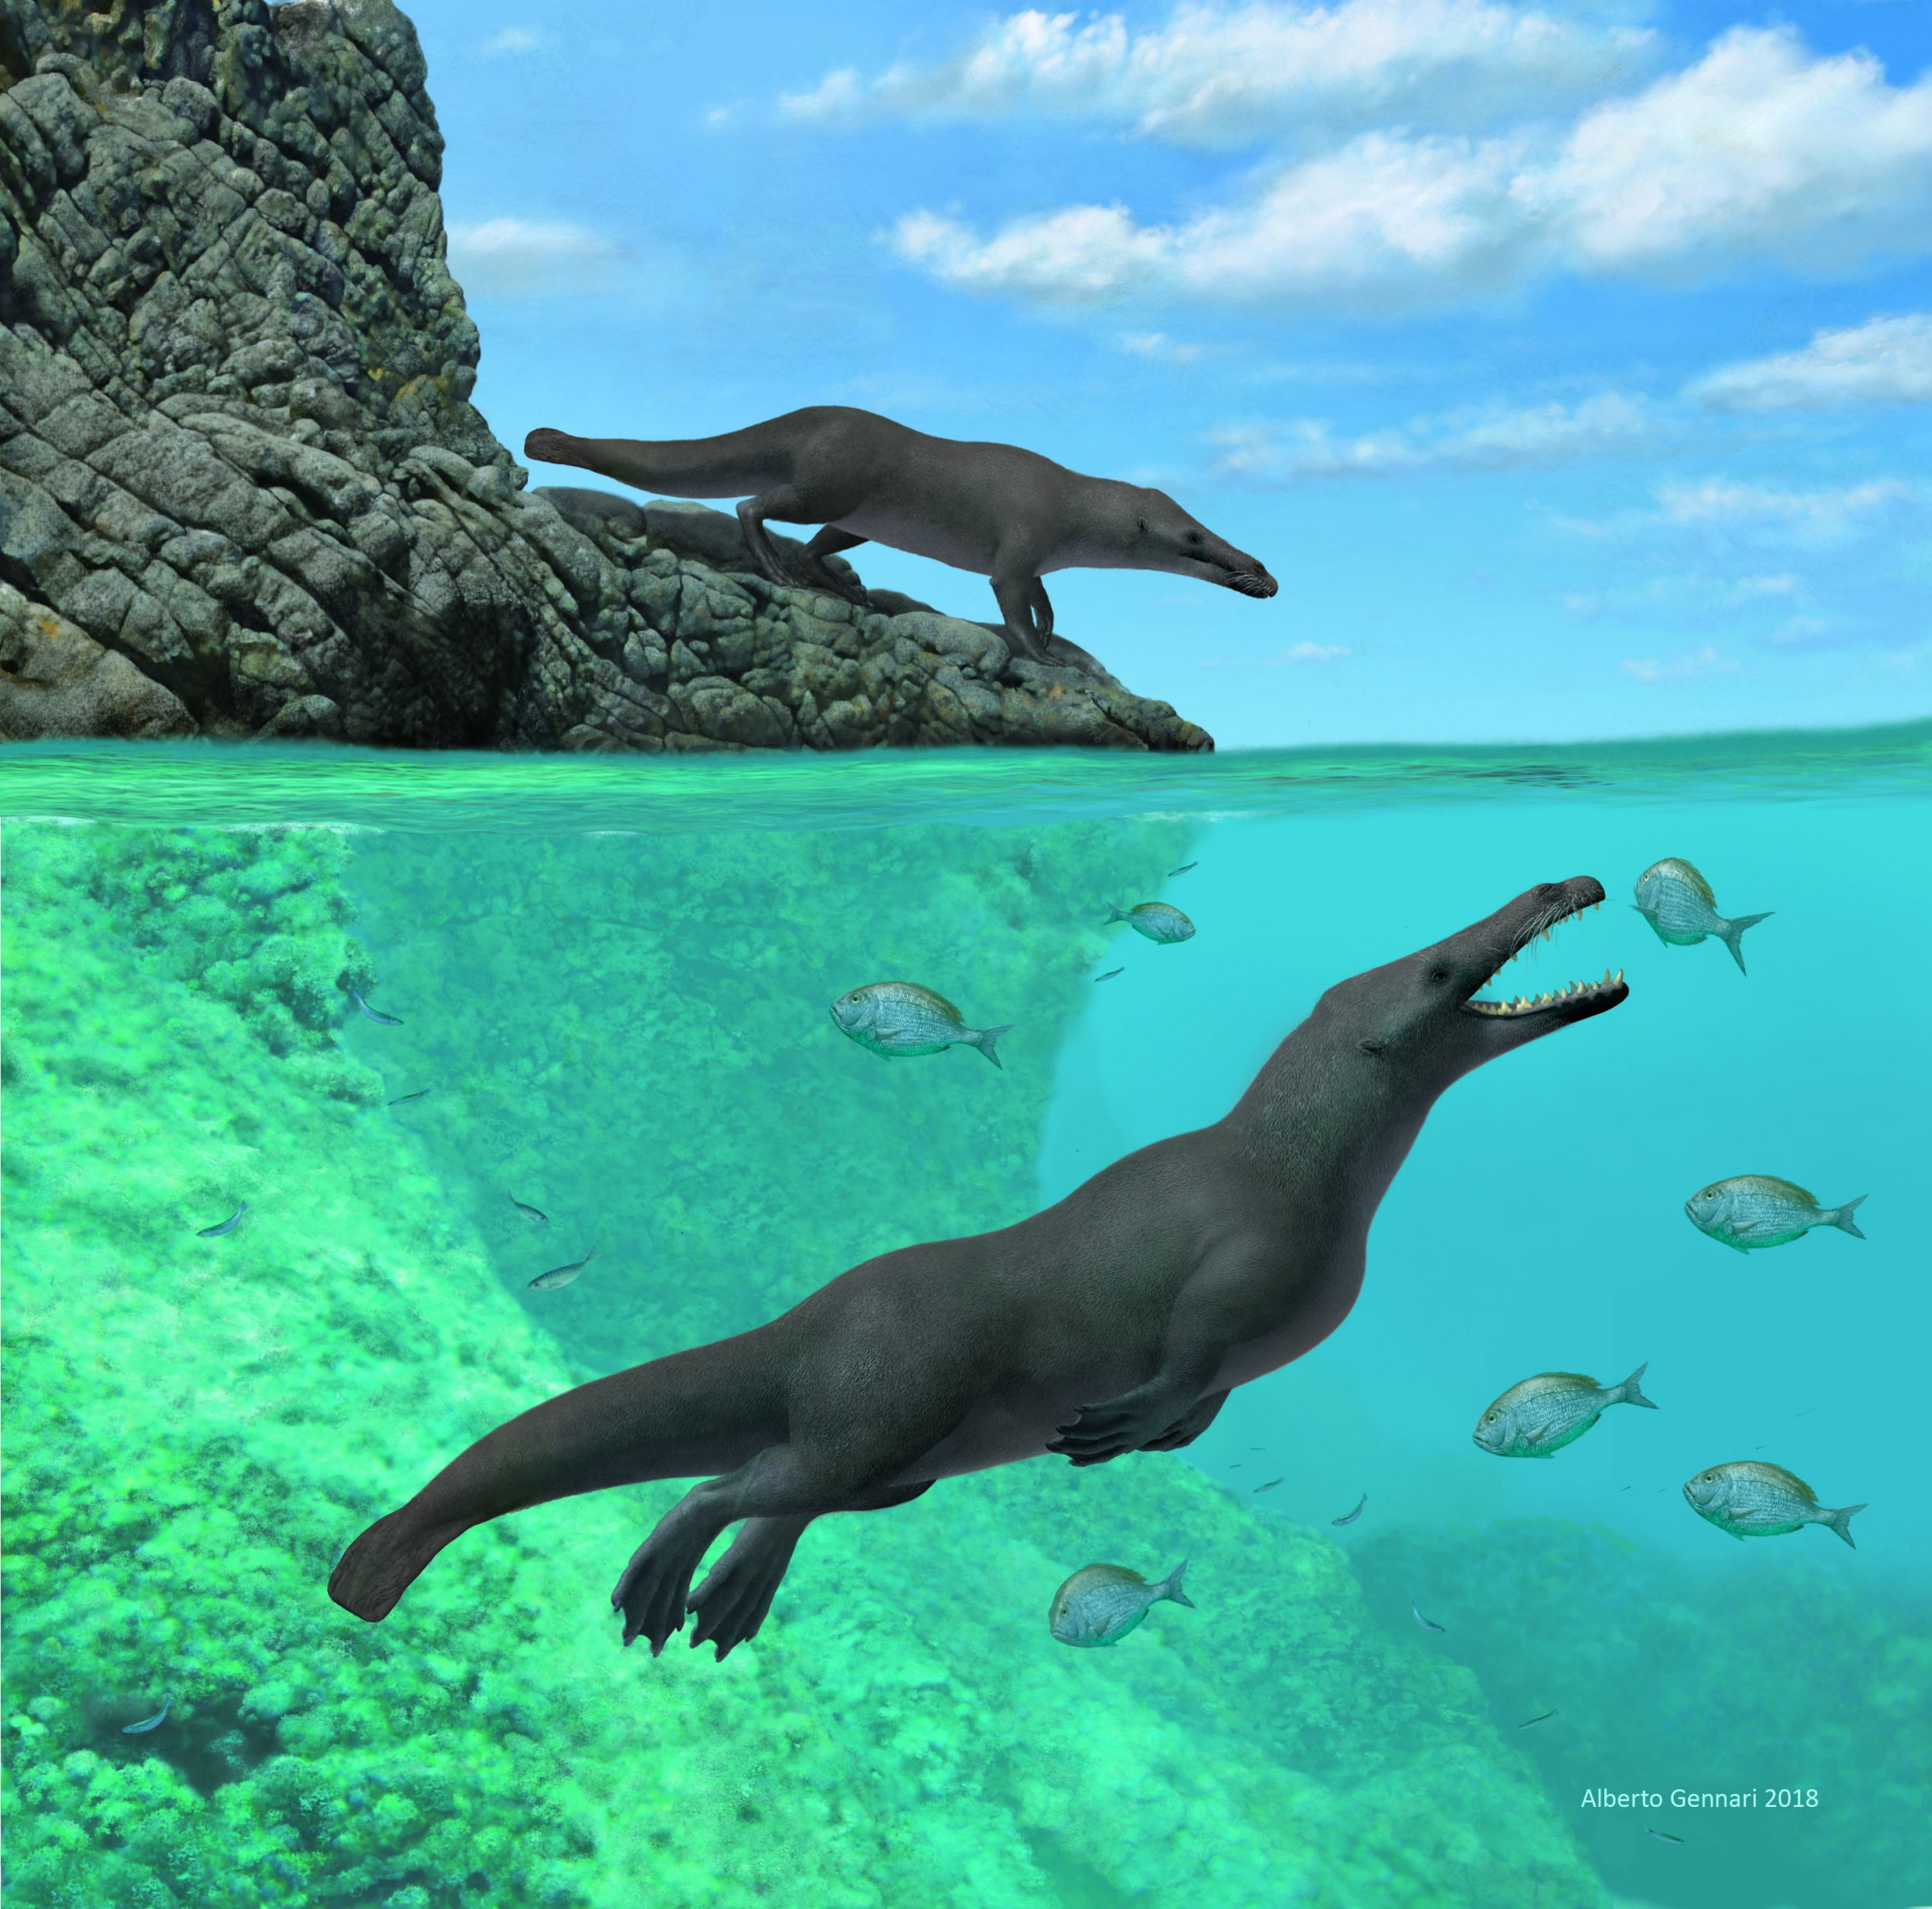 43-million-year-old semi-aquatic whale discovered in Peru